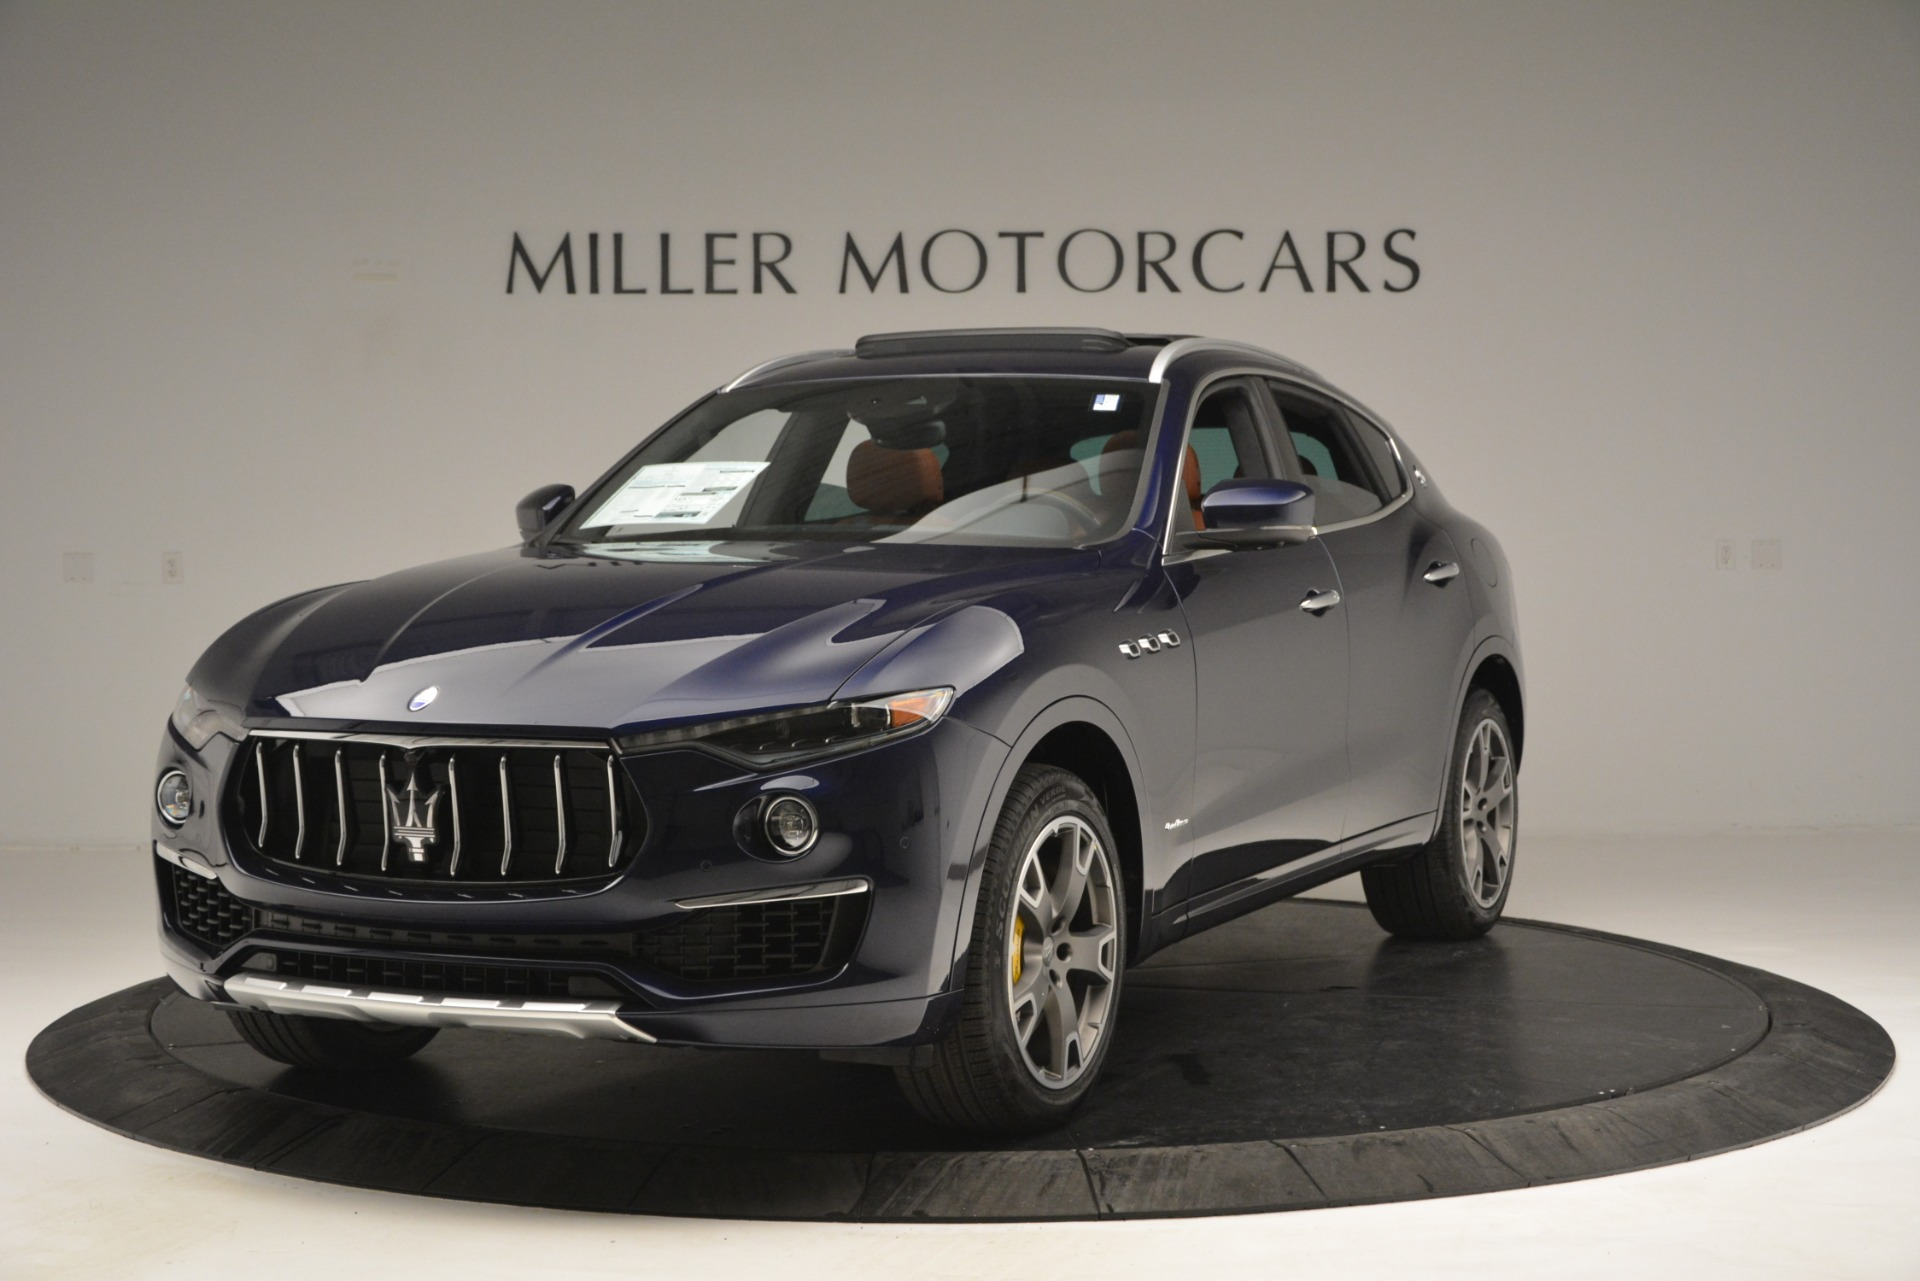 New 2019 Maserati Levante S Q4 GranLusso for sale Sold at Rolls-Royce Motor Cars Greenwich in Greenwich CT 06830 1